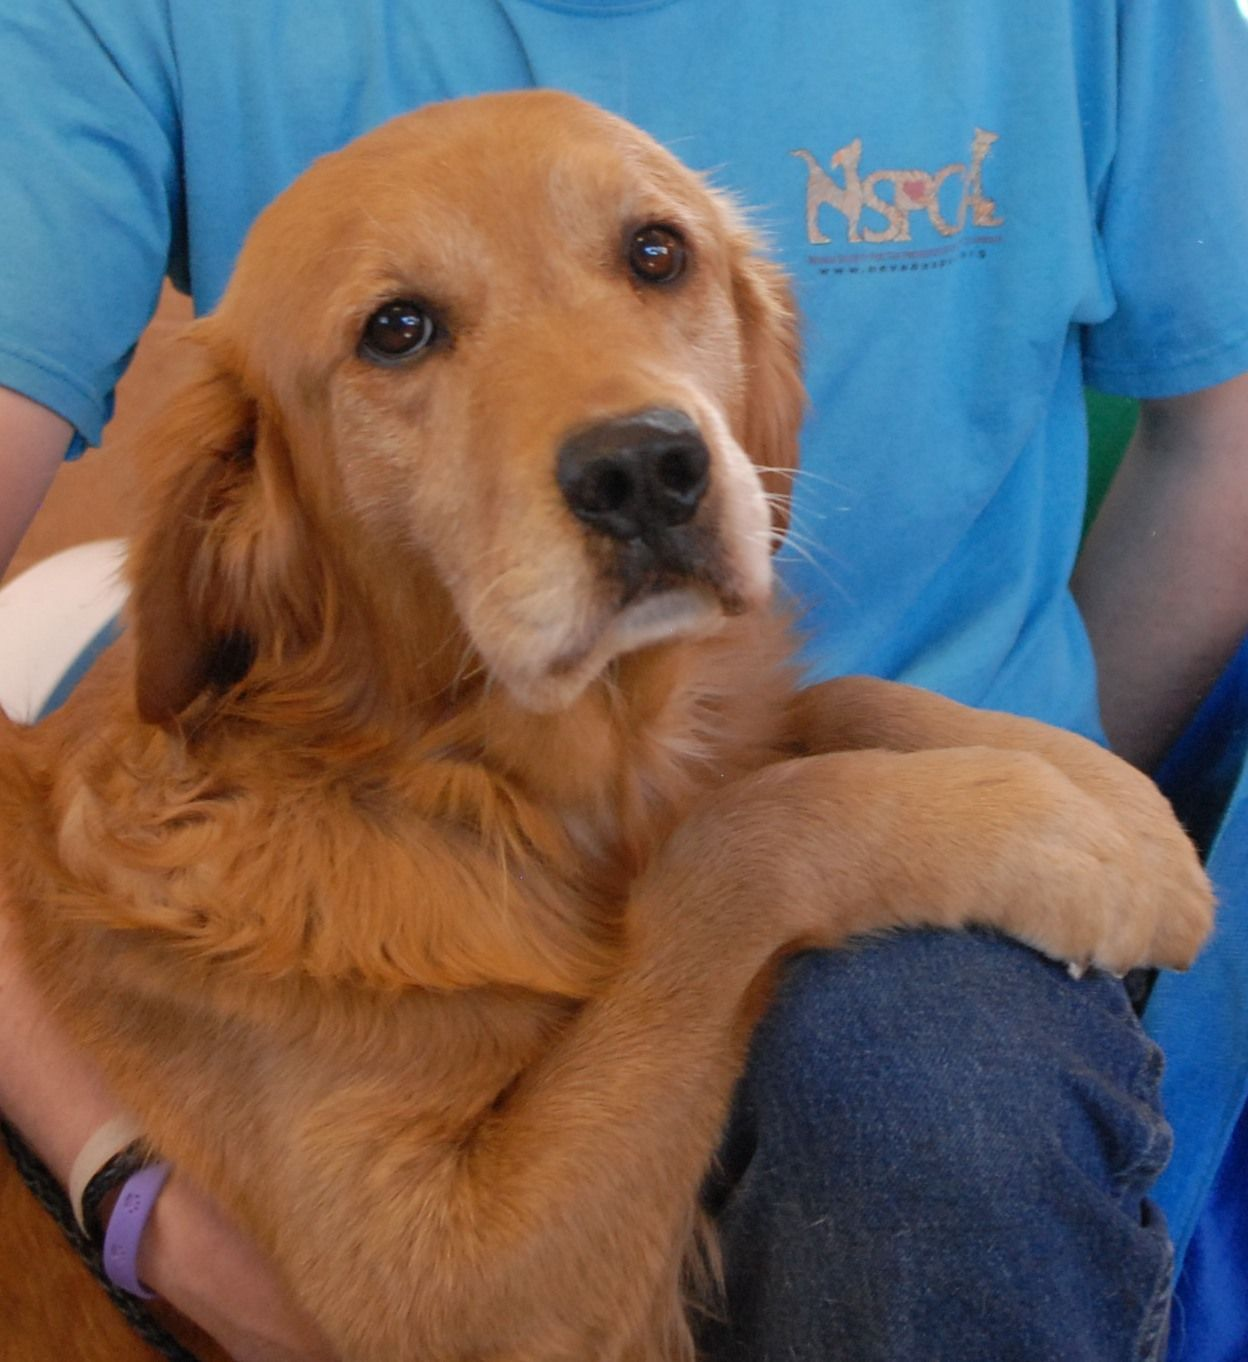 Honeybee Was Found Abandoned In A Park And No Amount Of Hugs Has Yet To Mend His Broken Heart He Is An Exceptionally Docile Golden Retriever About 6 Years Of